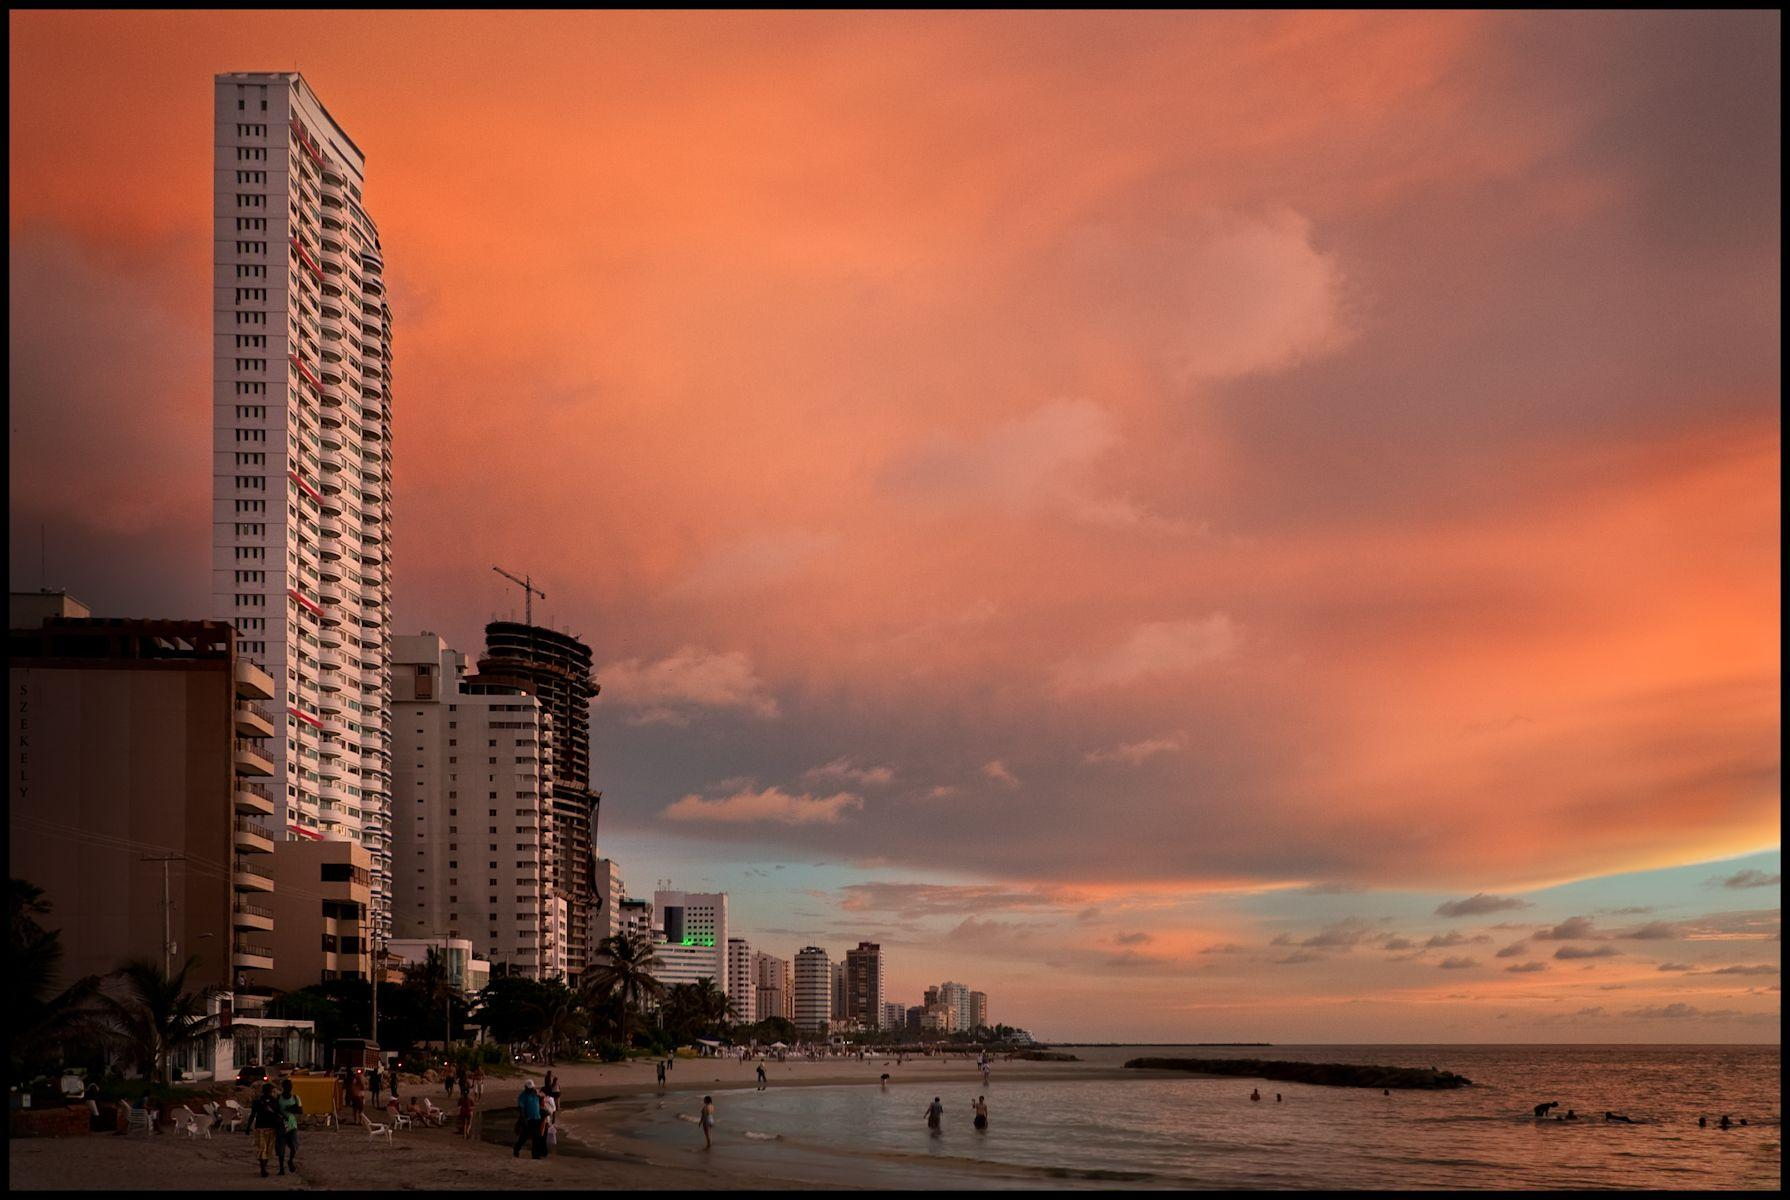 Cartagena - City in Colombia - Thousand Wonders